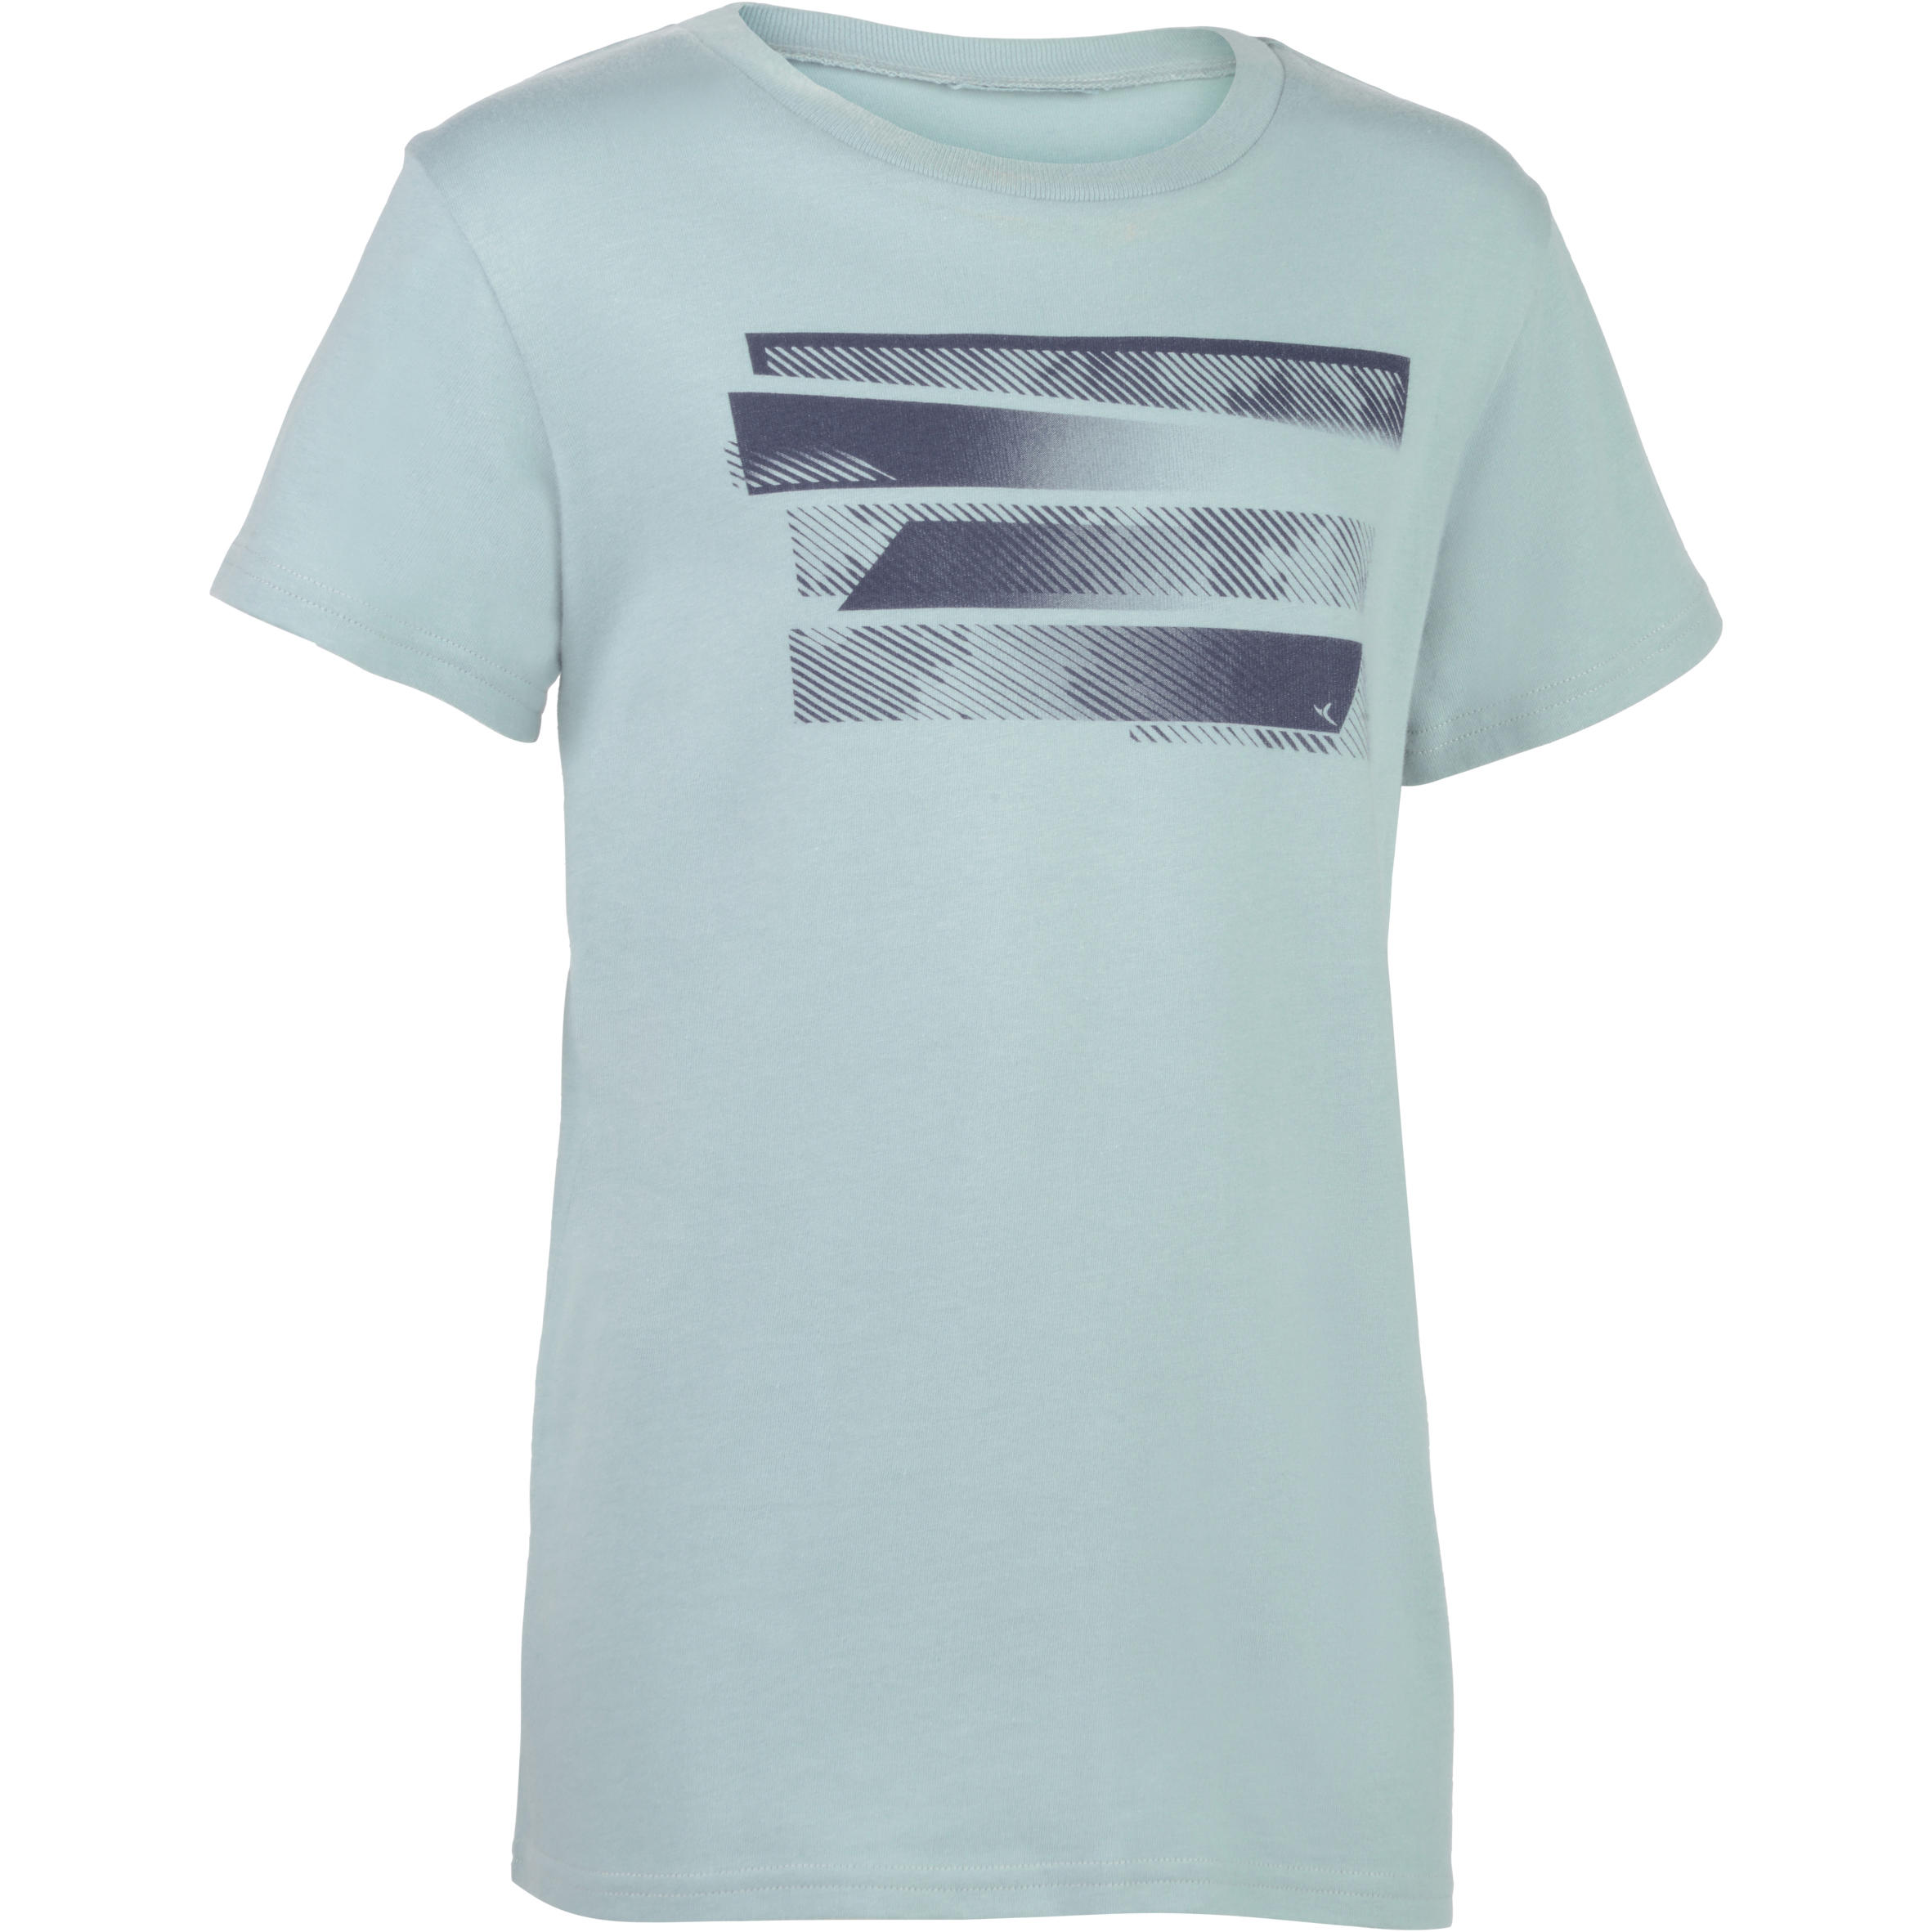 100 Boys' Gym Short-Sleeved T-Shirt - Grey Print